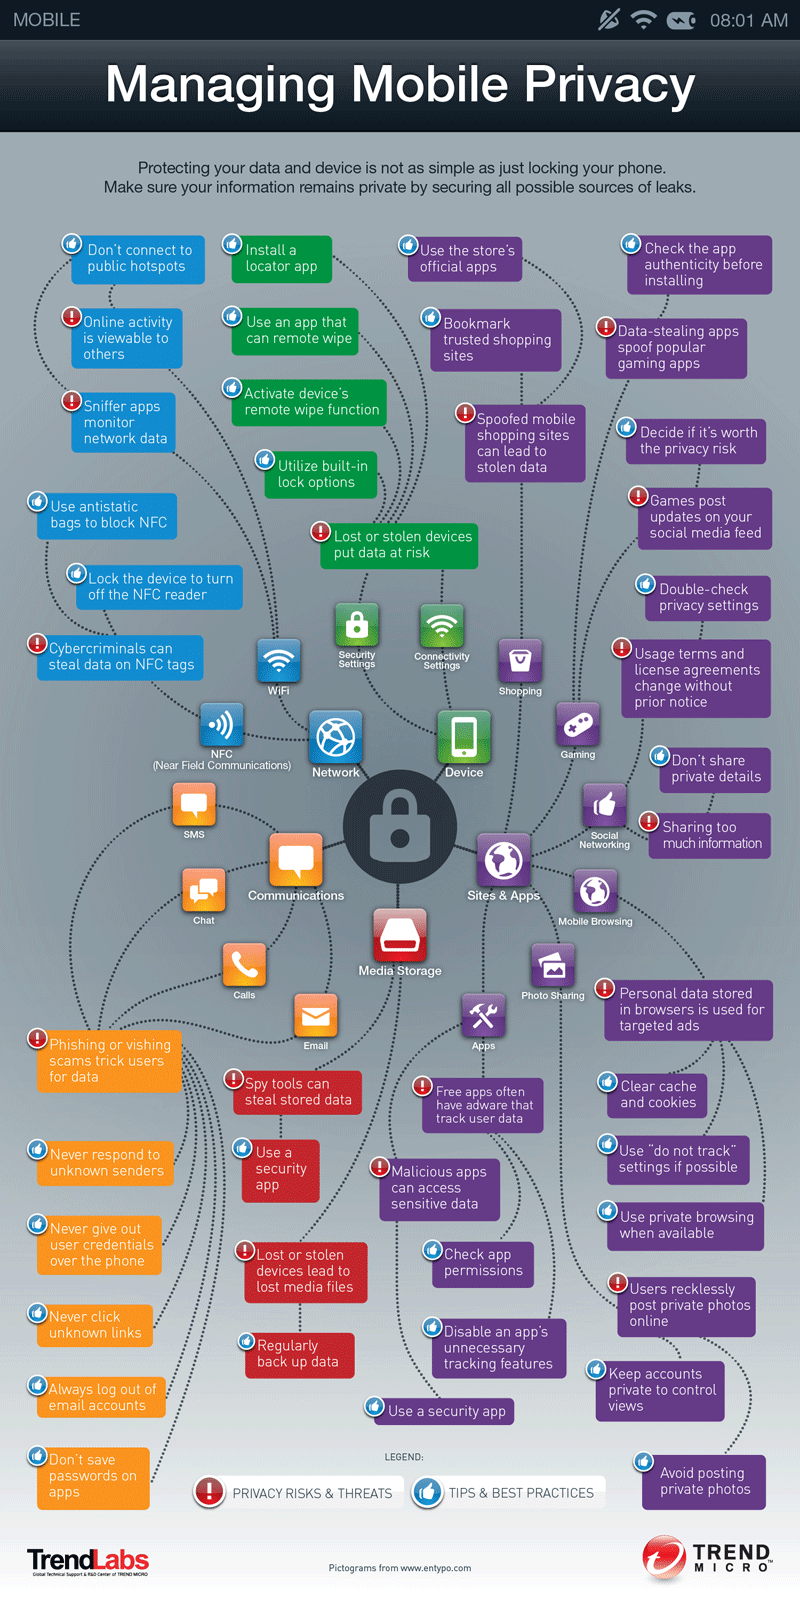 Infographic on mobile privacy from Trend Micro (click to see full)